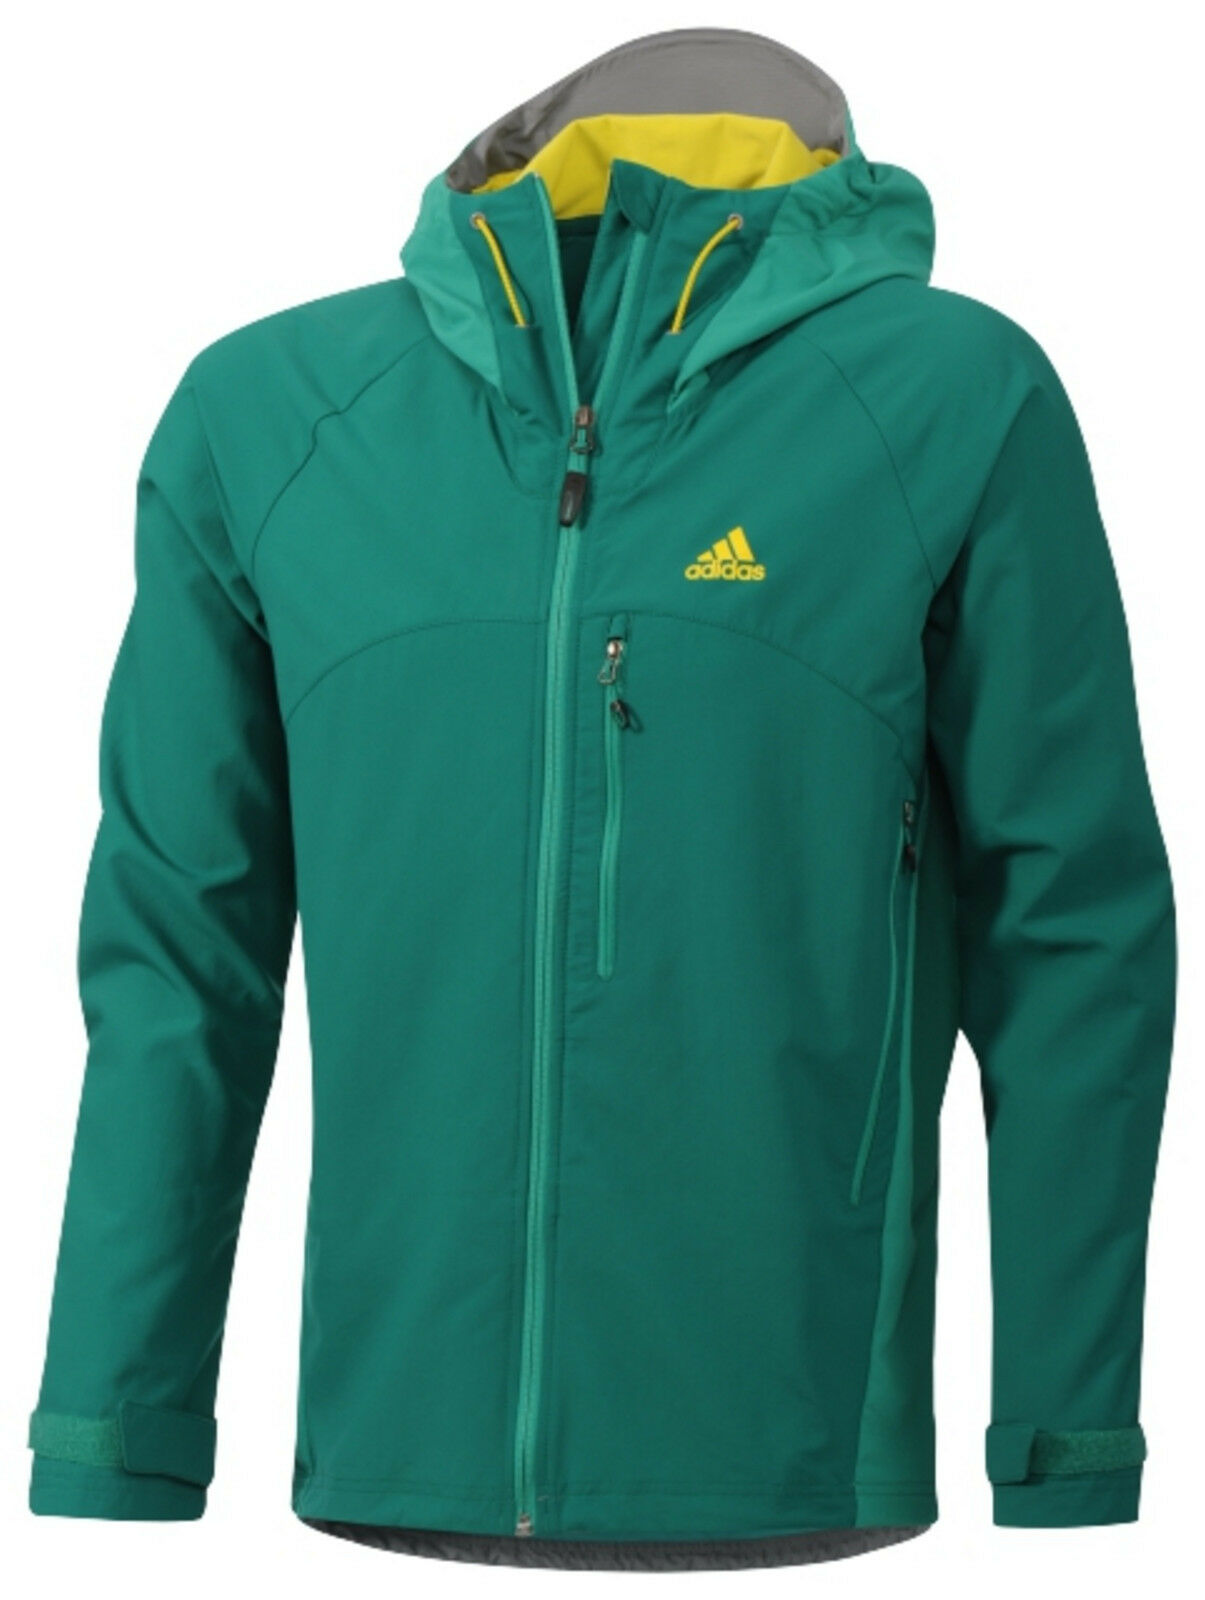 Funzione Adidas Giacca Softshell Outdoor, escursionismo, jogging HT liho soshj TG. s46